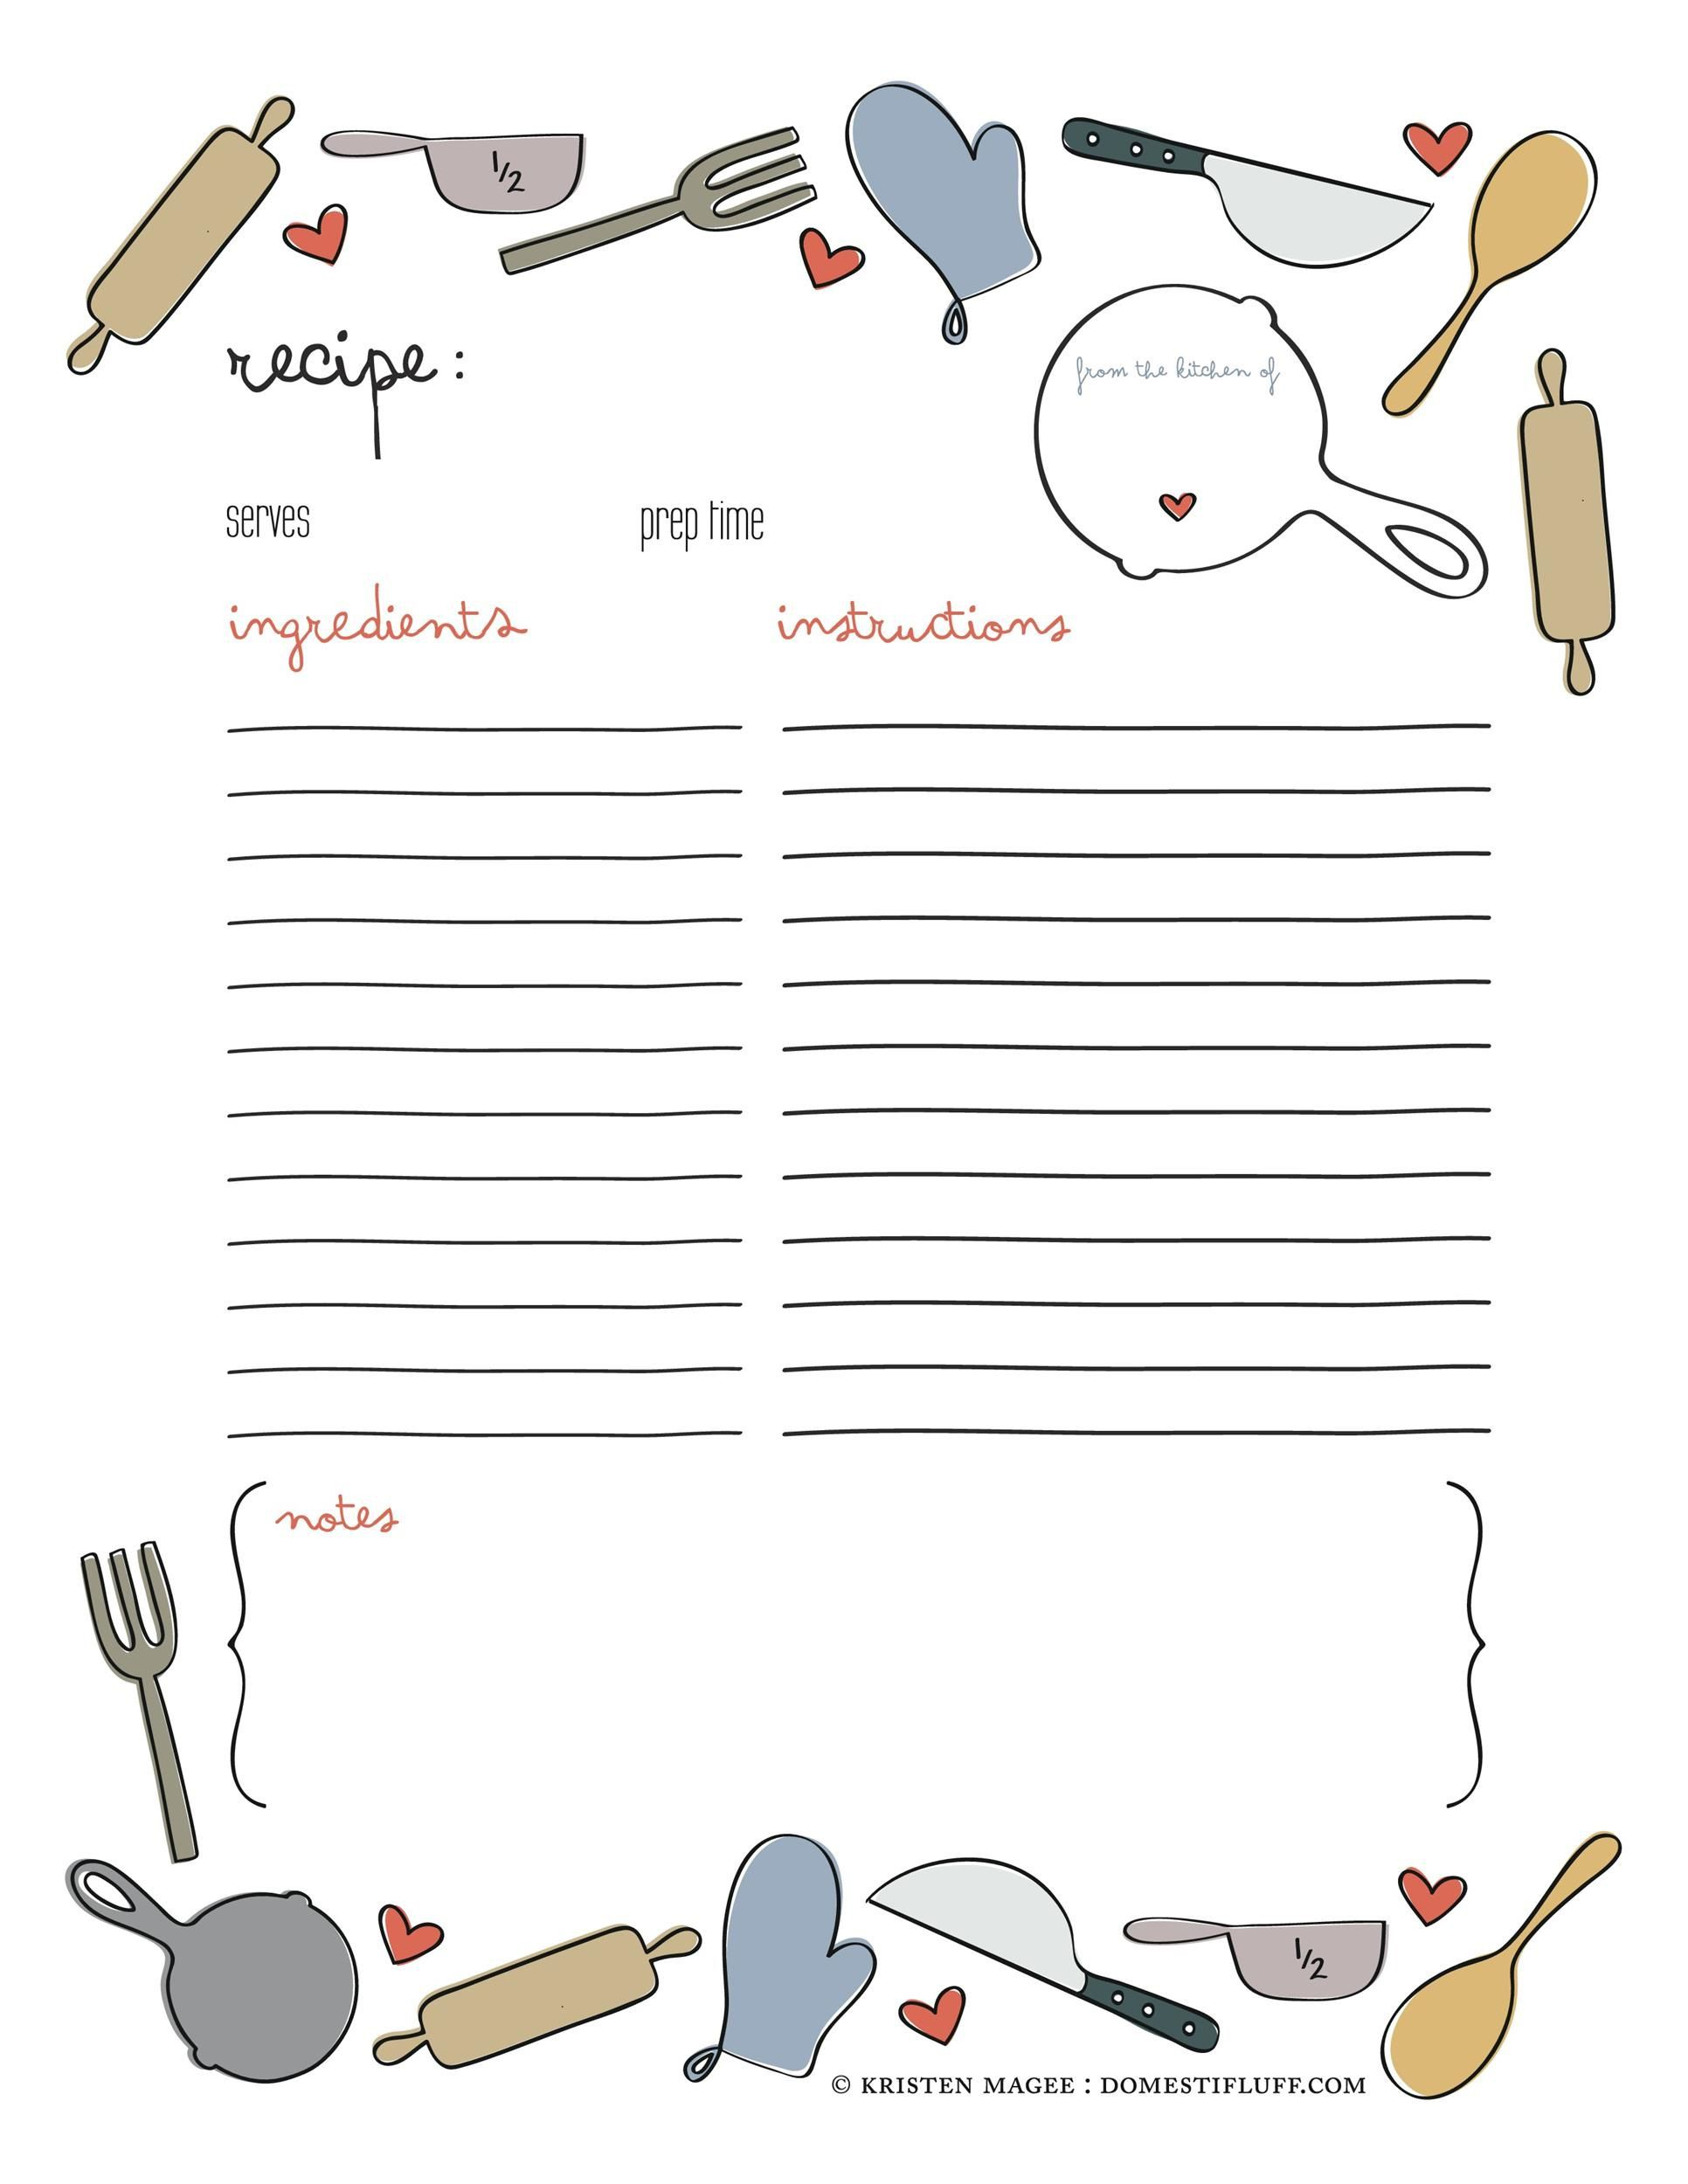 008 Remarkable Free Make Your Own Cookbook Template Download Photo Full